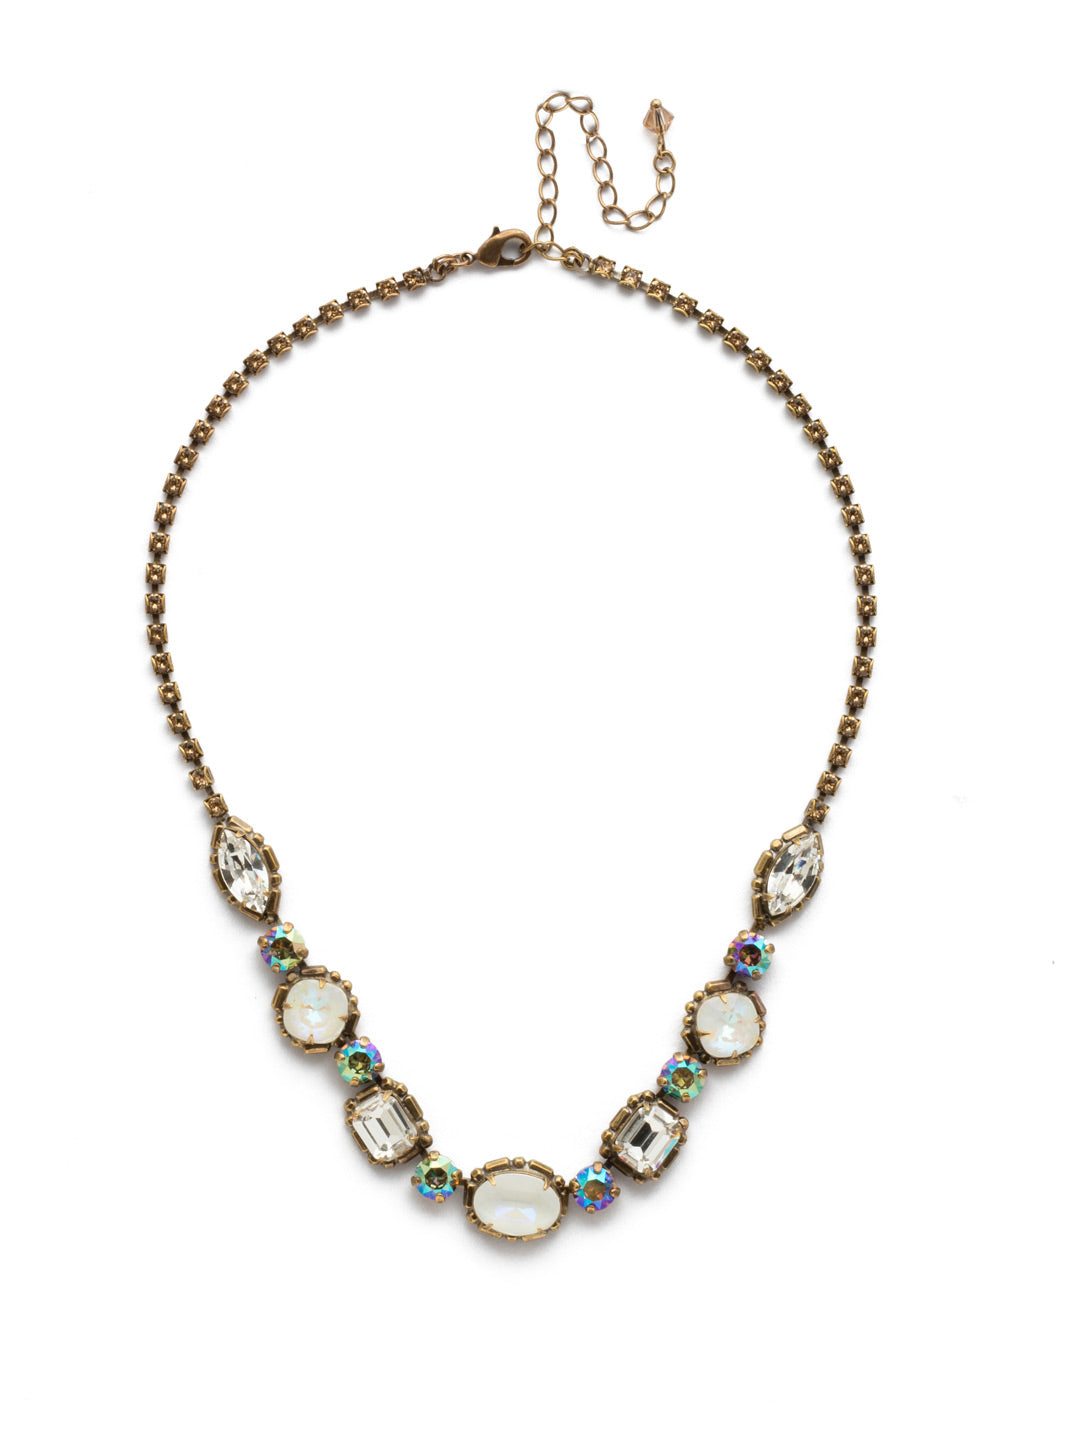 Cardoon Statement Necklace - NDX7AGROB